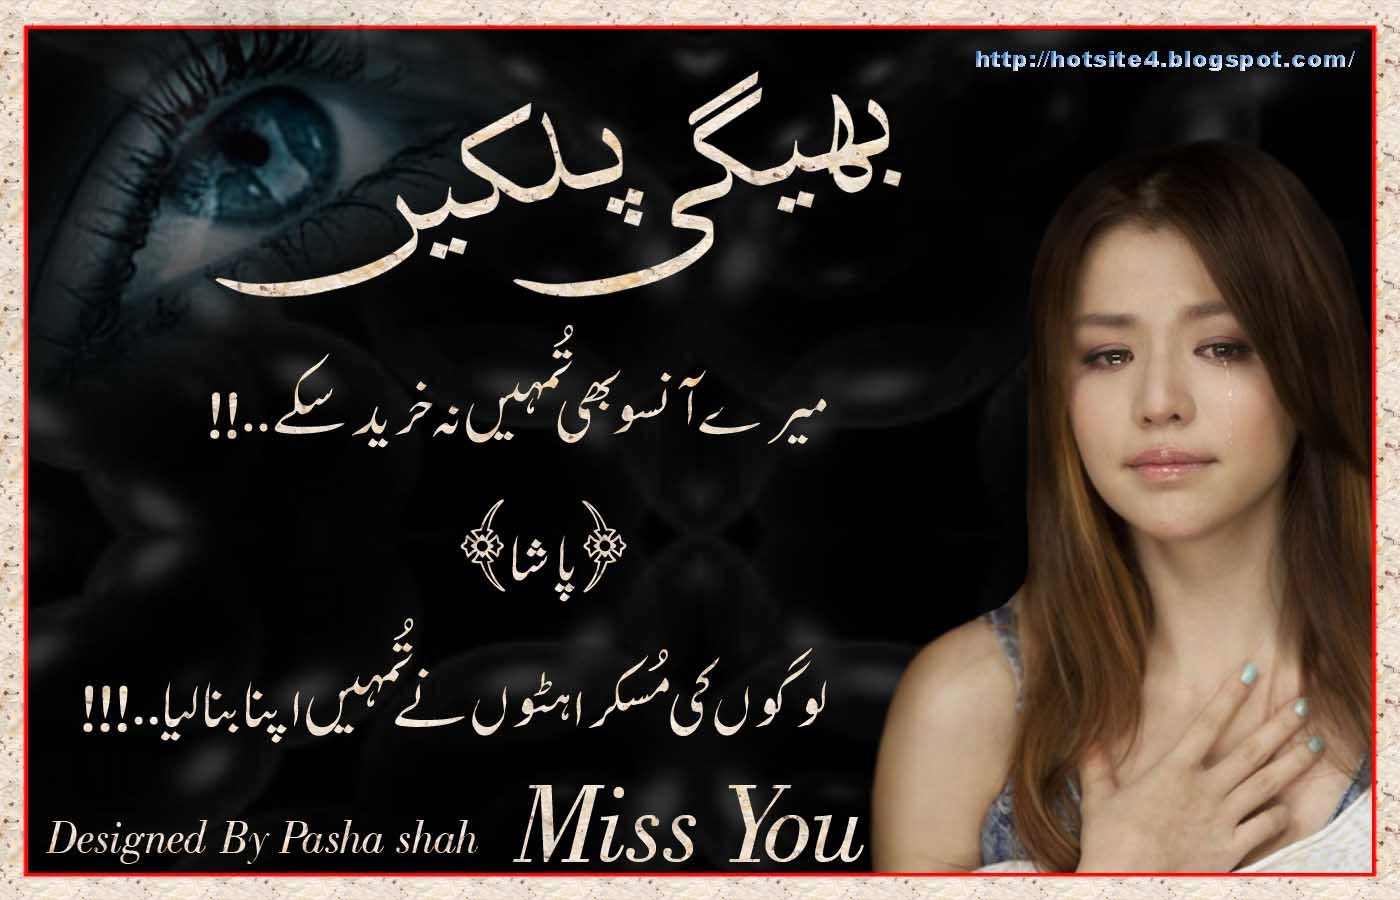 Urdu Sad Poetry 2014 HD Wallpapers   Sad Urdu Poetry HD Wallpaper 1400x900